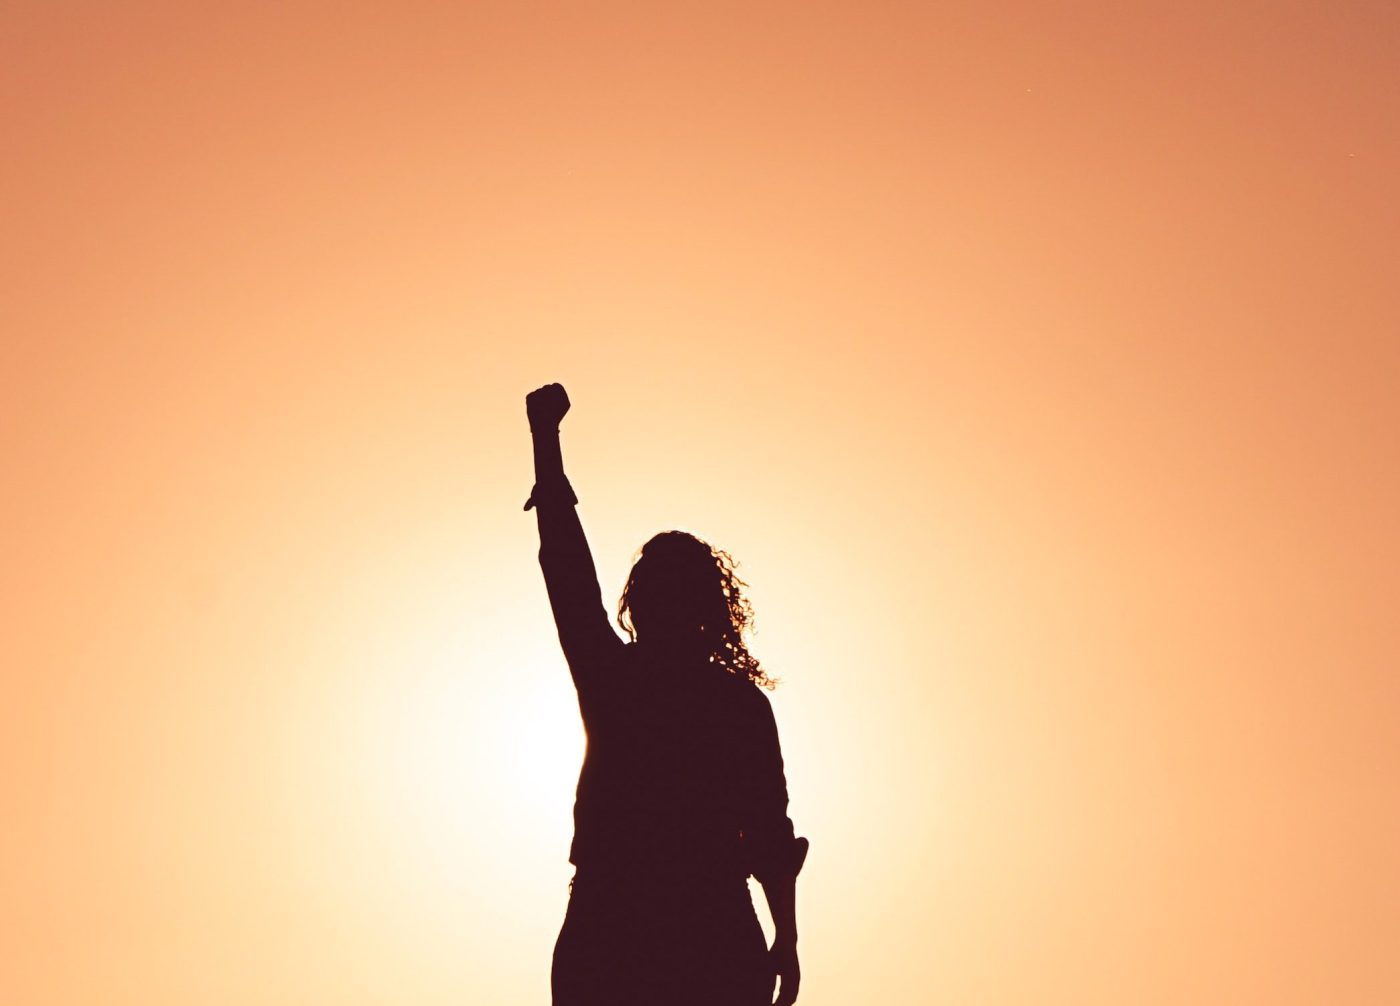 silhouette of determined employee standing triumphantly with arm raised and the sun at their back having learned self determination from situational leadership instruction Photo by Miguel Bruna on Unsplash